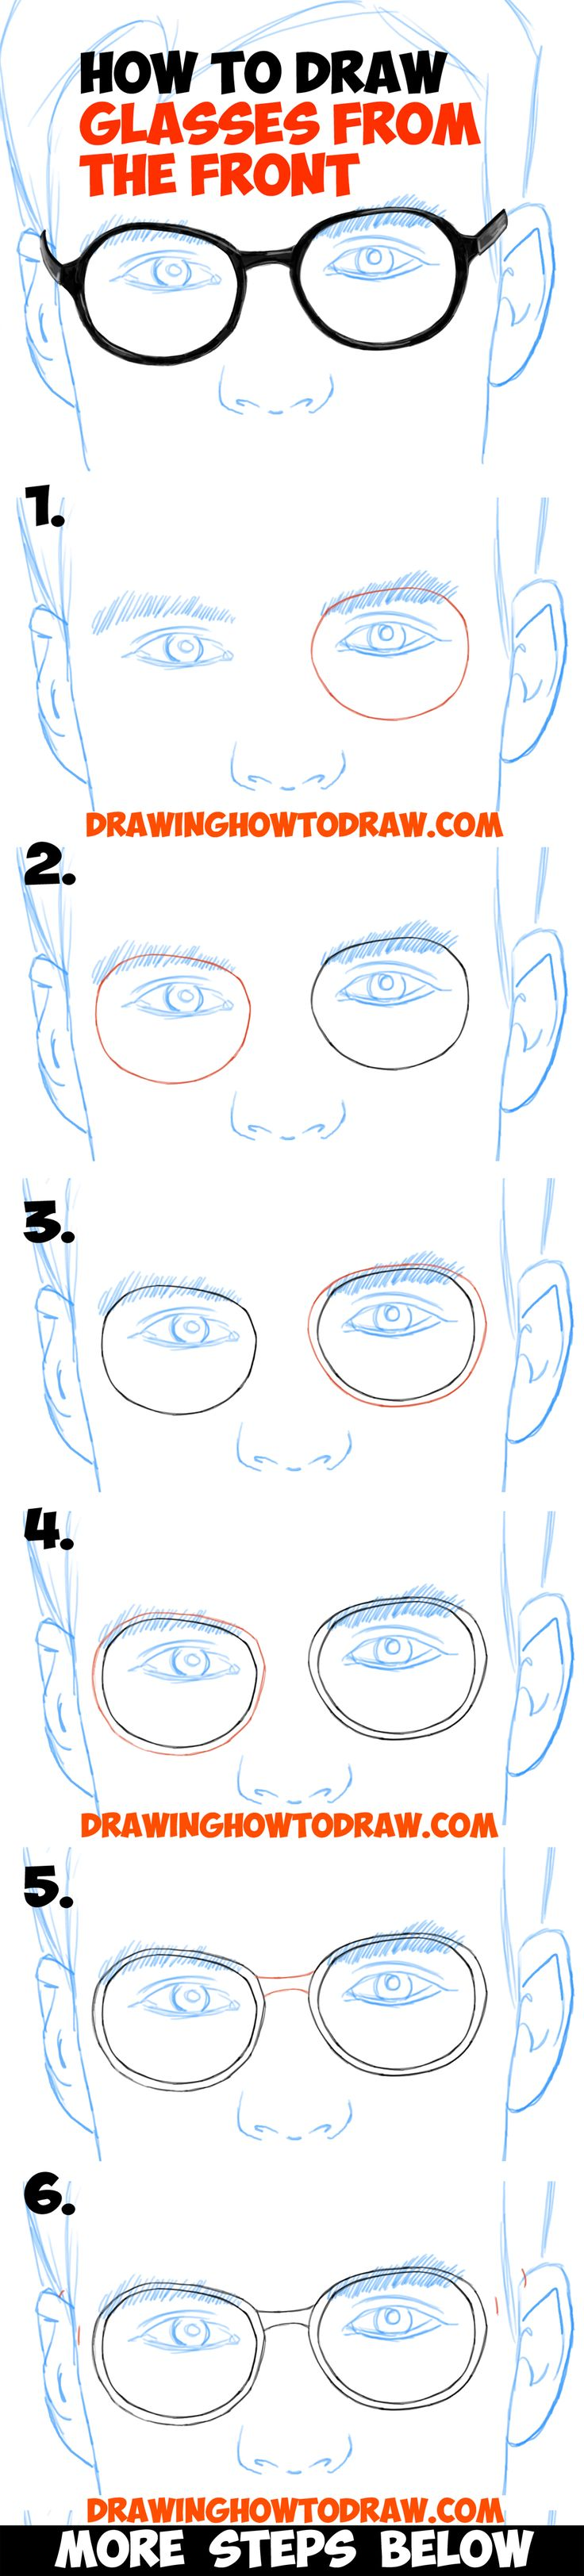 How to draw a simple emo face step 1 - How To Draw Glasses On A Face From The Front View In Easy Step By Step